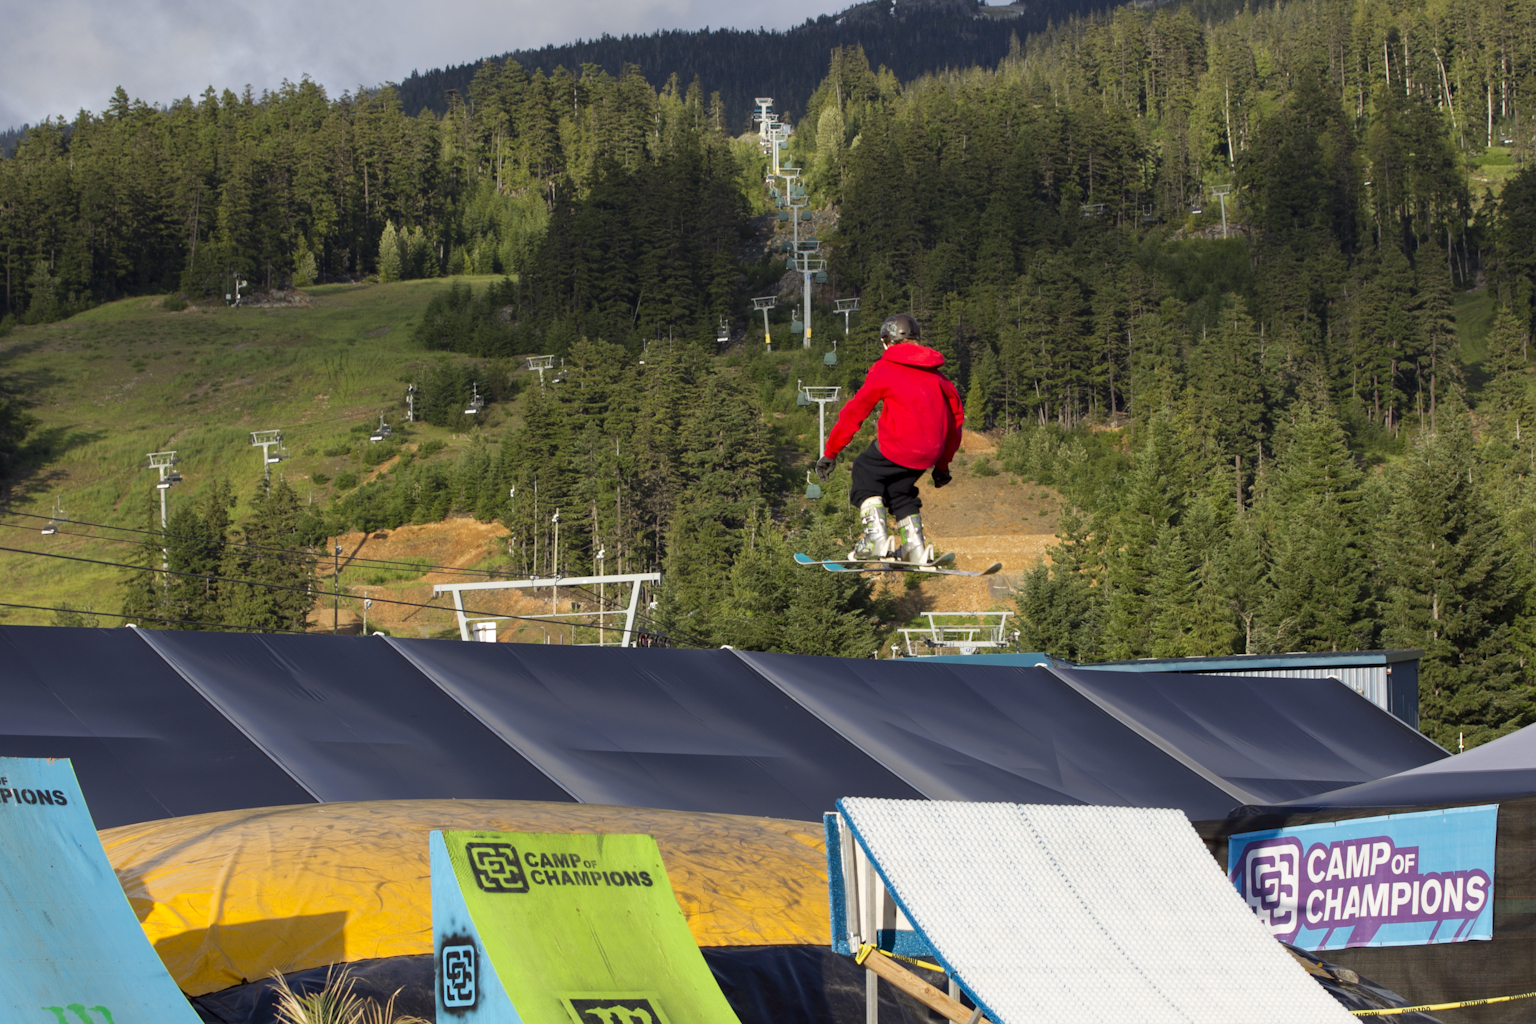 The Camp of Champions - The Launcher - 6 of 15